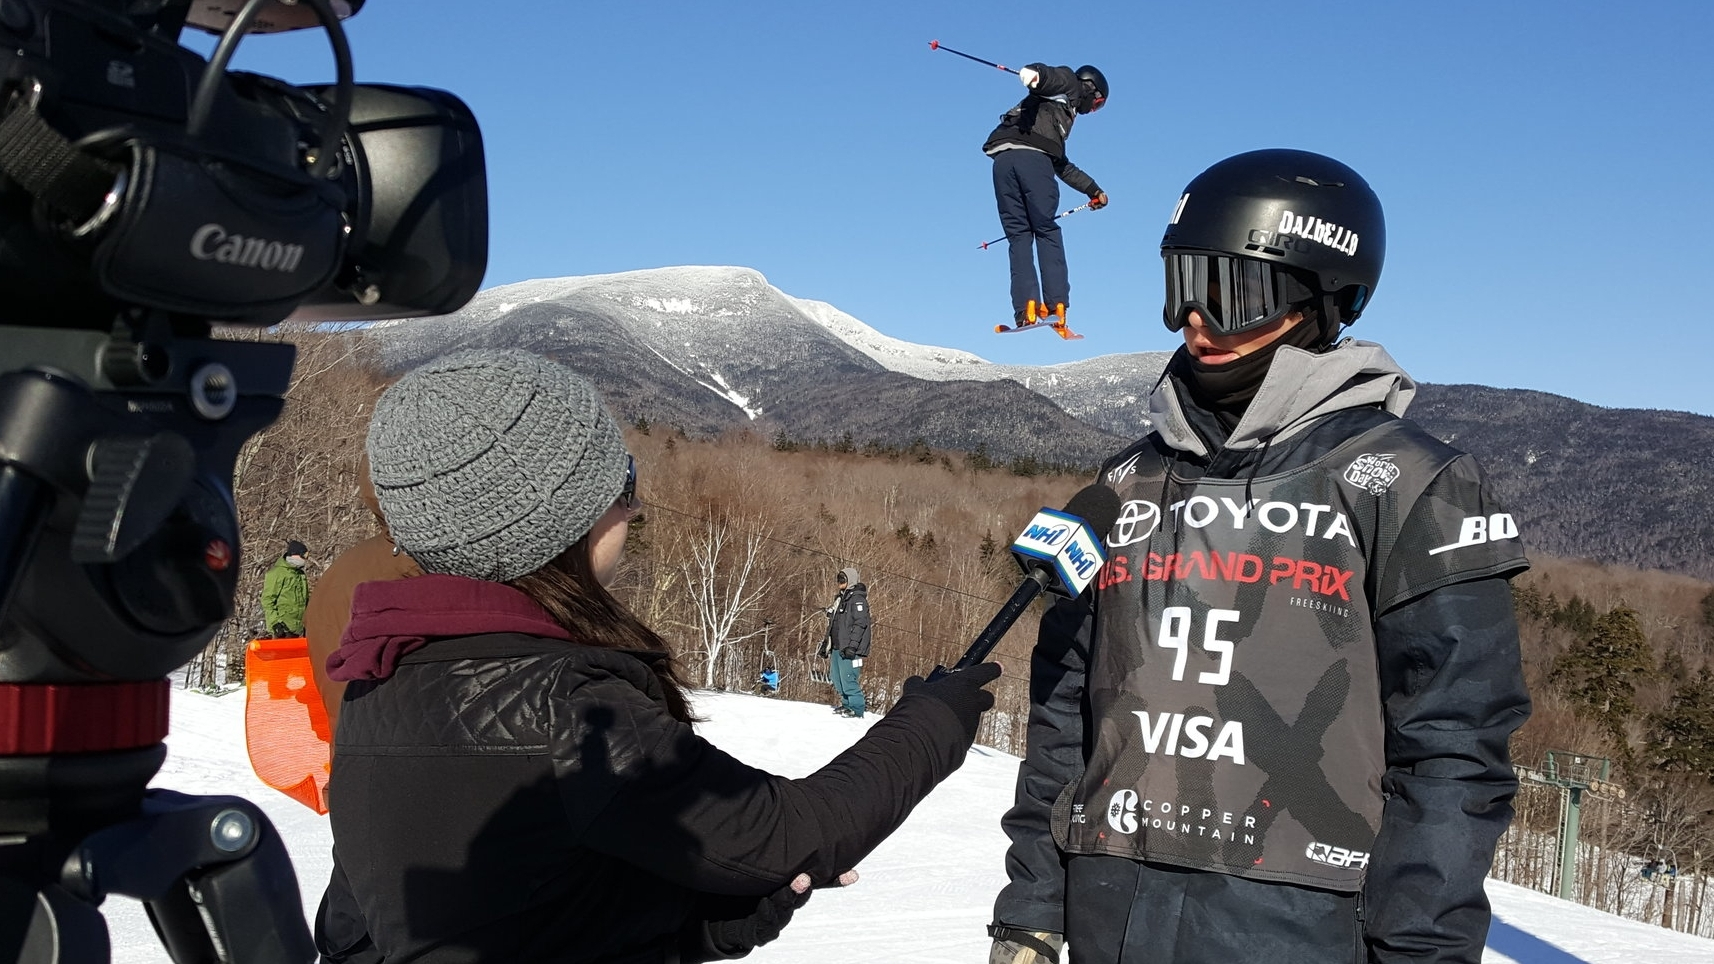 Interview up and coming athletes at one of our many events this winter.